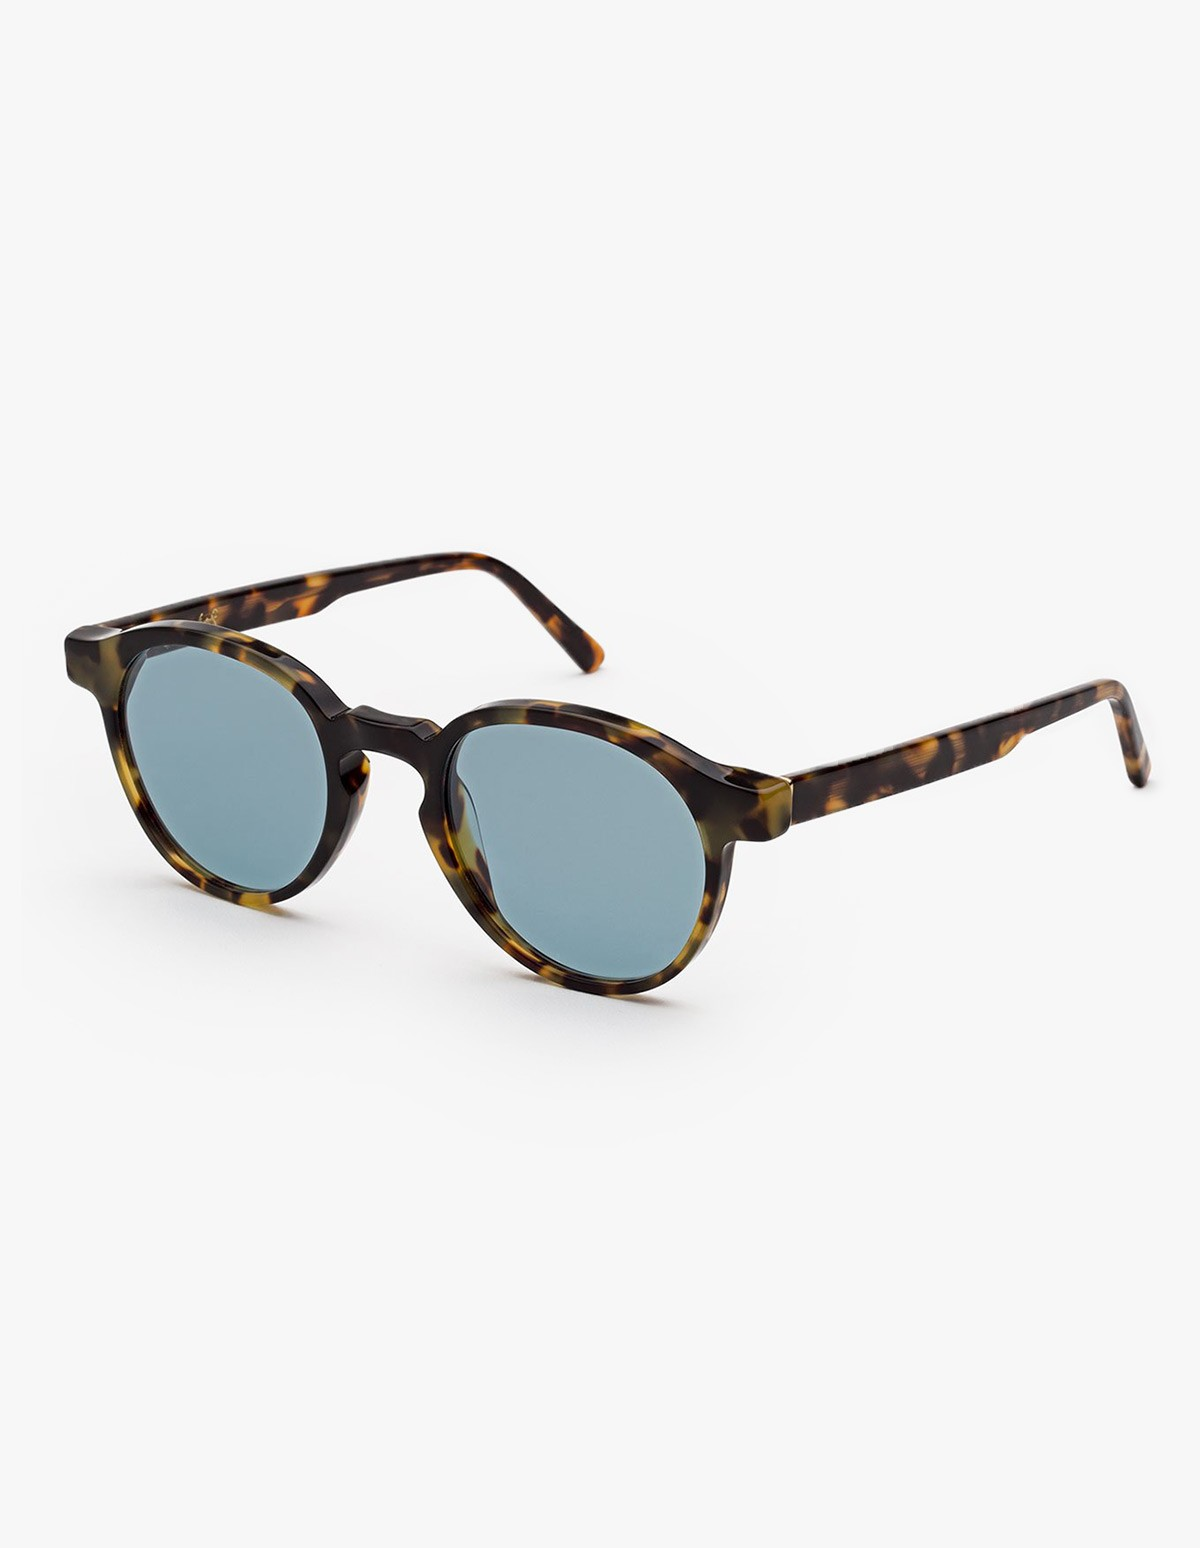 Retrosuperfuture Andy Warhol The Iconic Series Sunglasses in Cheeta